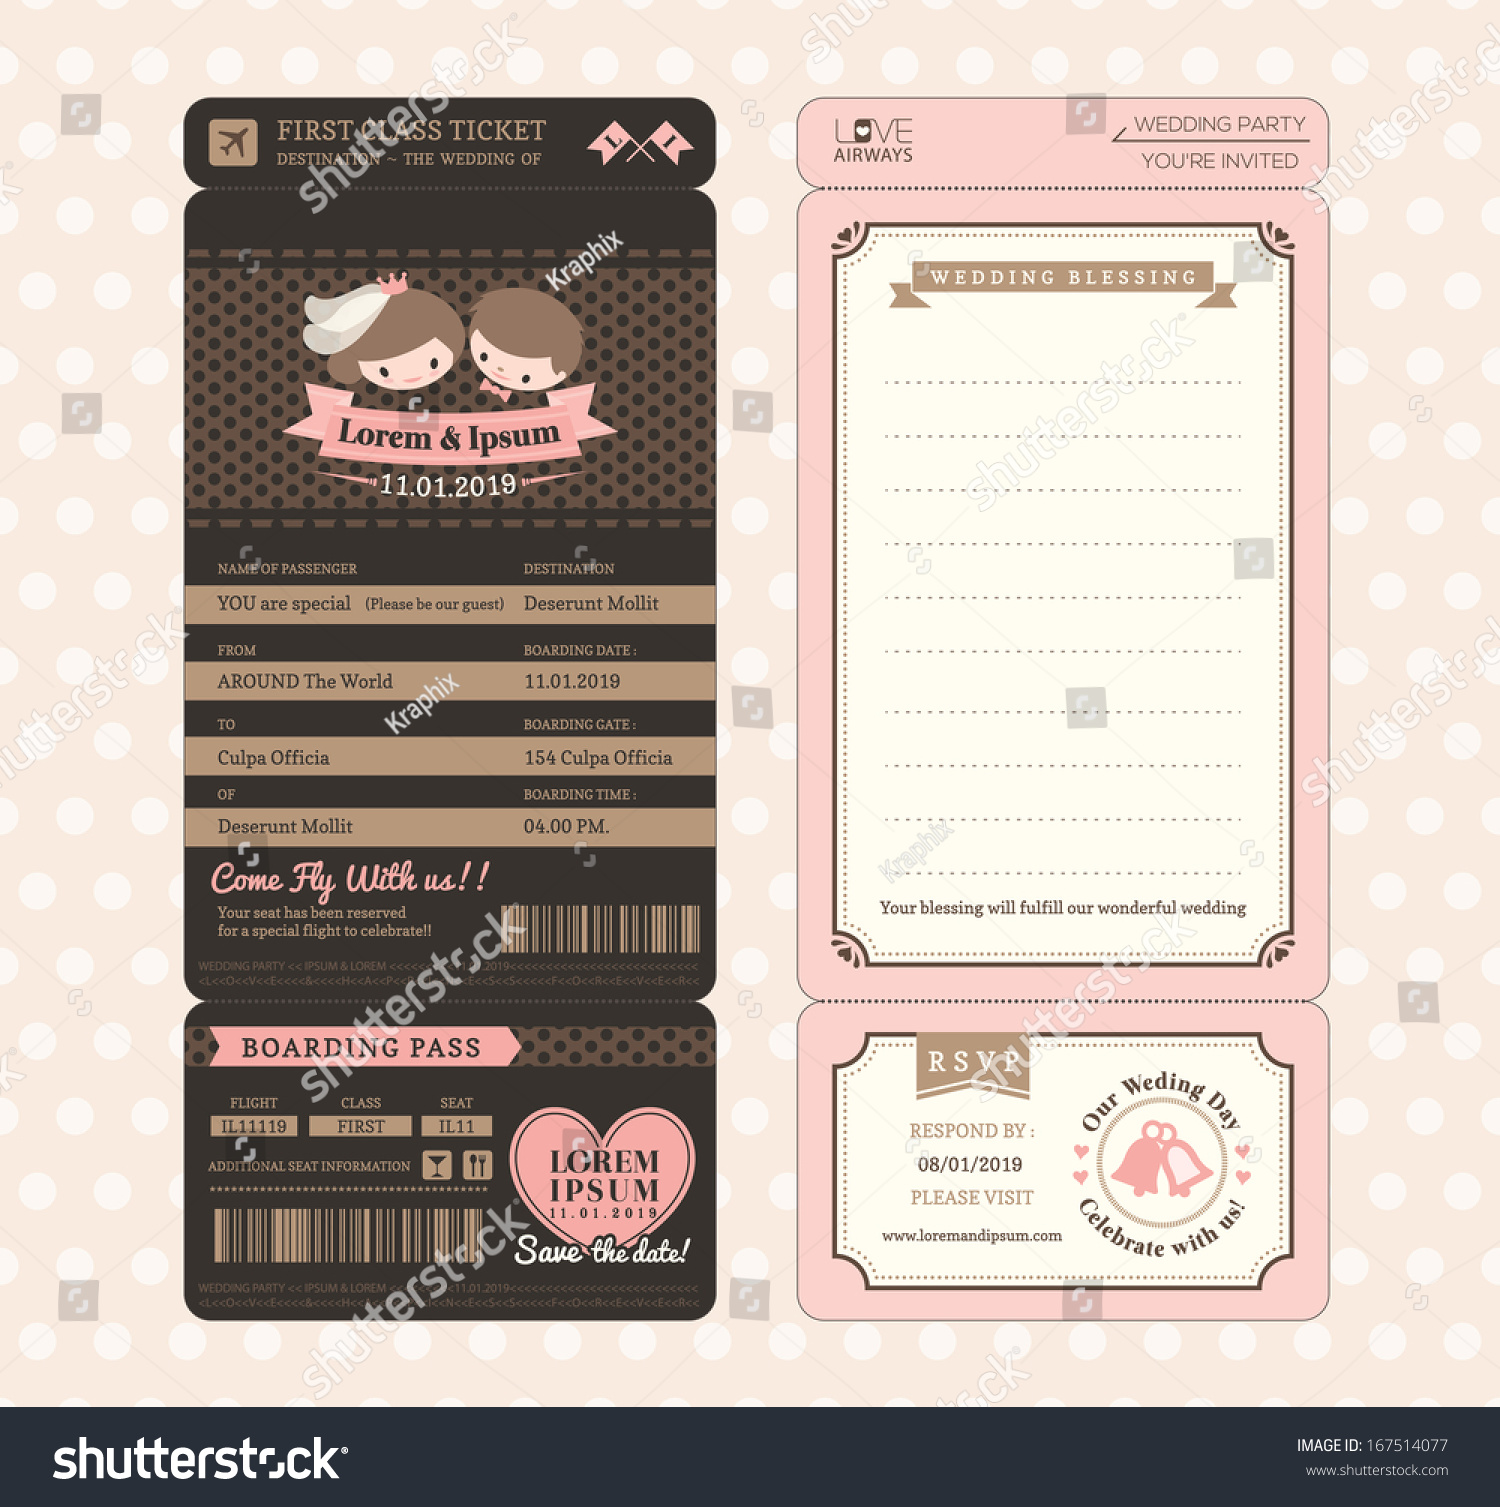 Cute Groom Bride Vintage Boarding Pass Vector 167514077 – Ticket Design Template